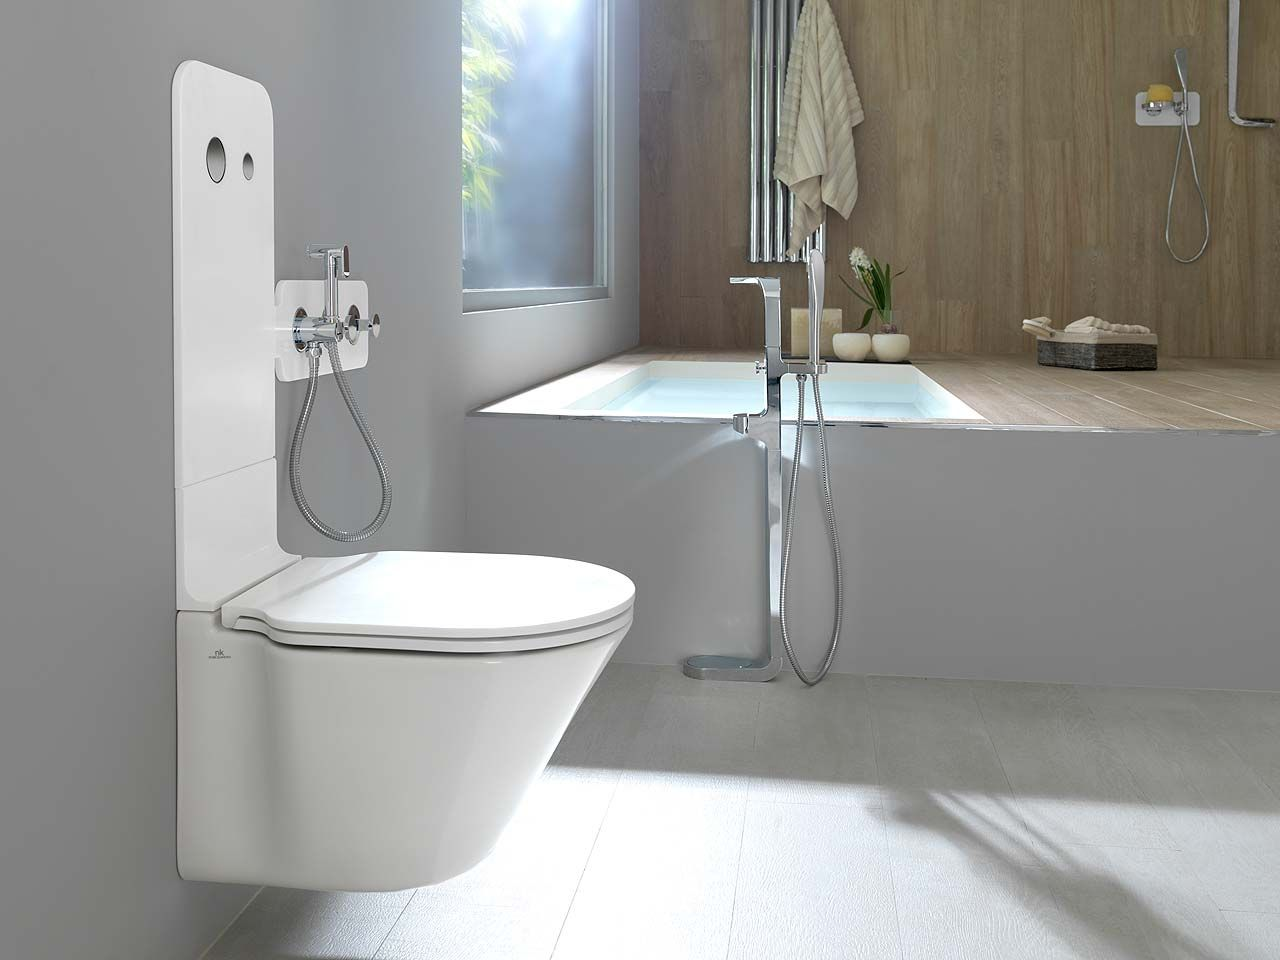 Noken The Porcelanosa Group Company That Specialises In Bathroom Equipment Offers Customers A